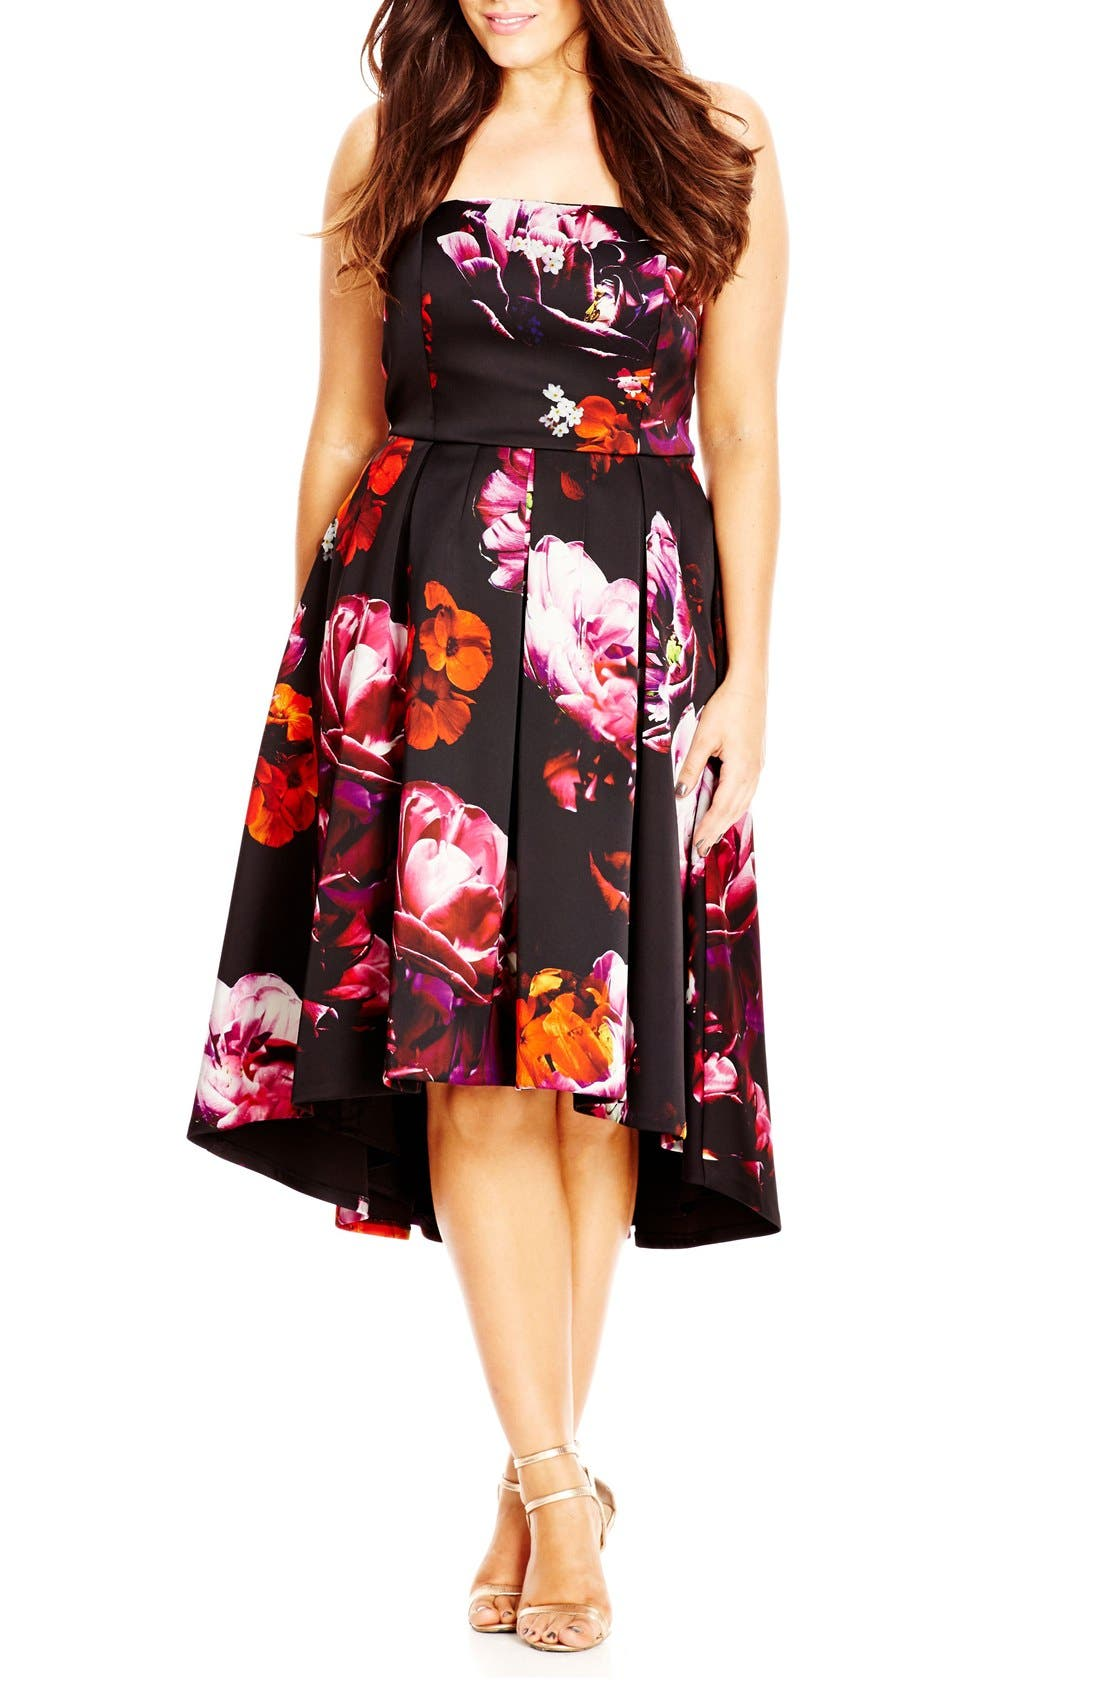 Alternate Image 1 Selected - City Chic 'Floral Magic' Floral Print Strapless High/Low Dress (Plus Size)